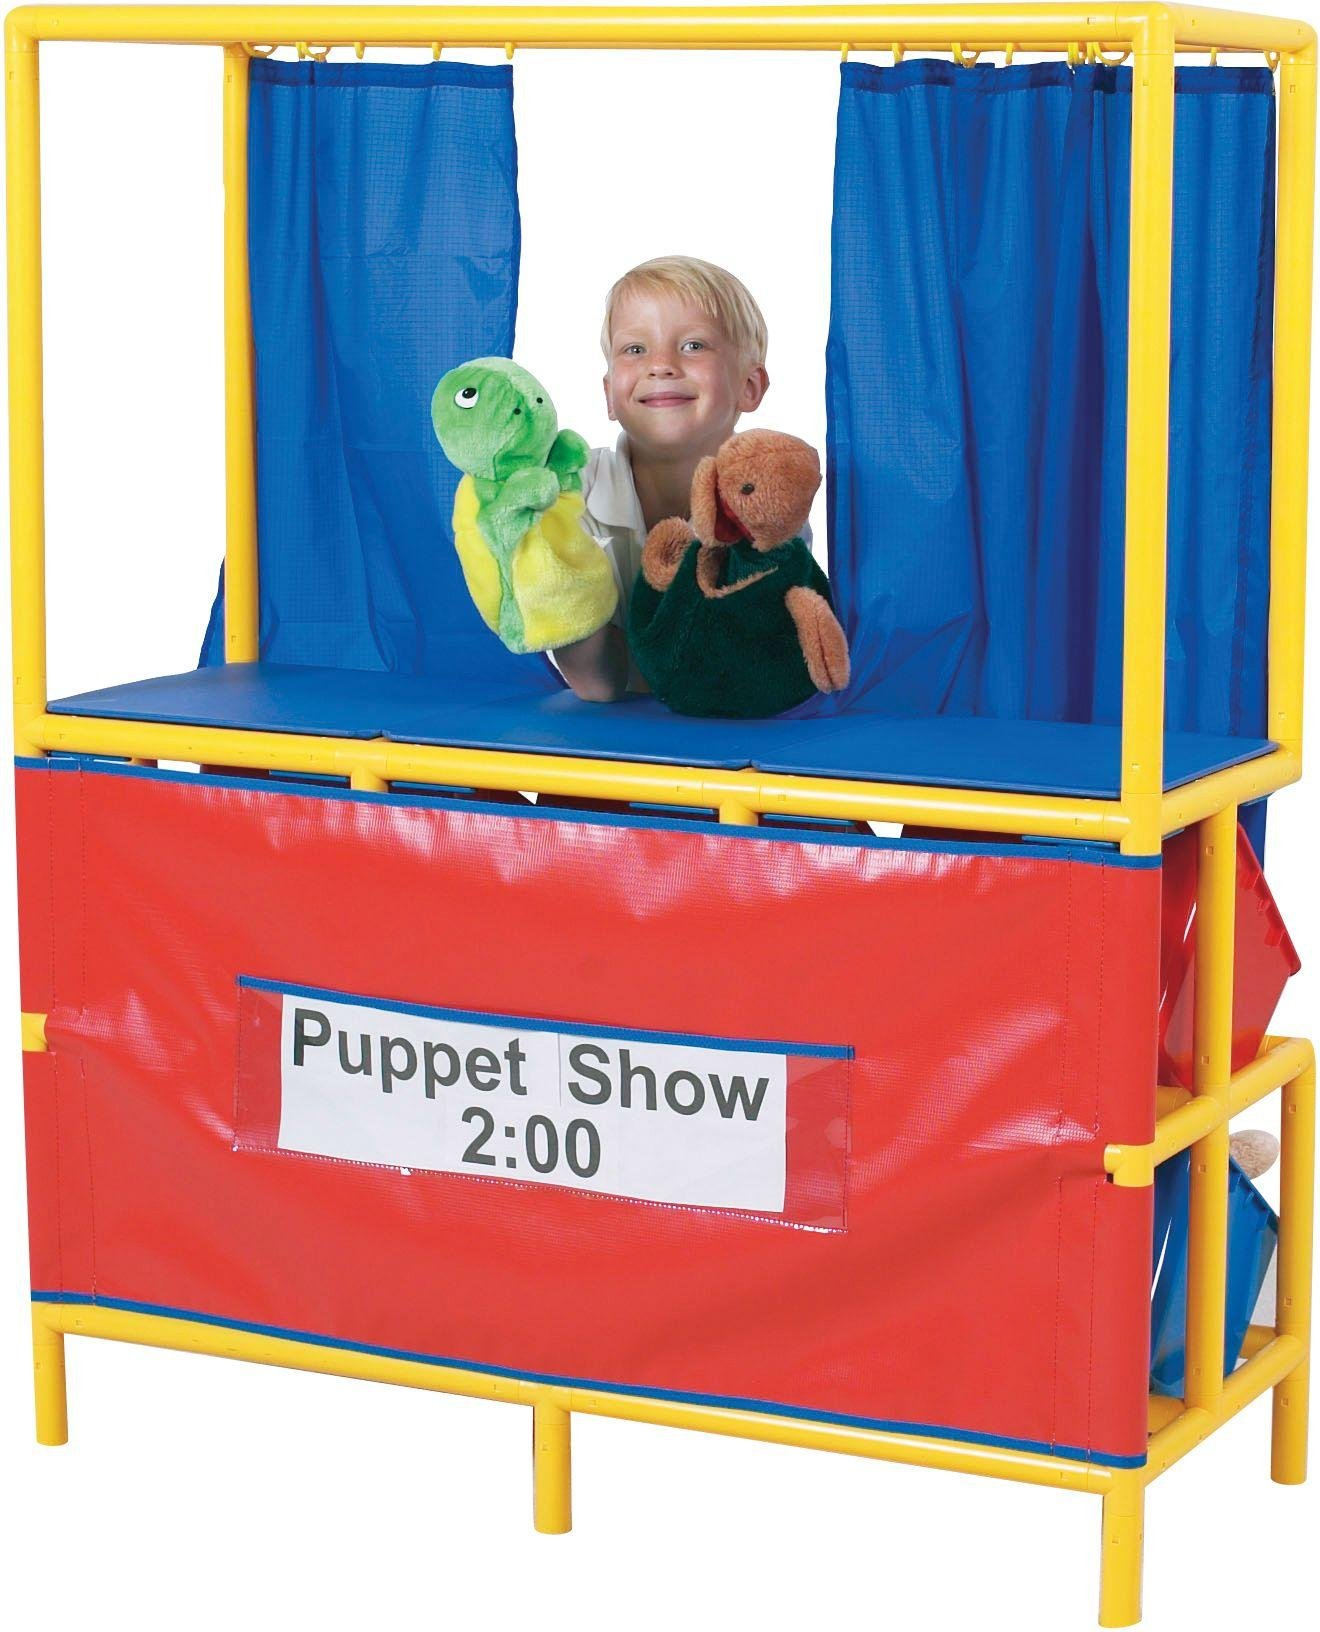 Image of Puppet Stage and Cubbies.